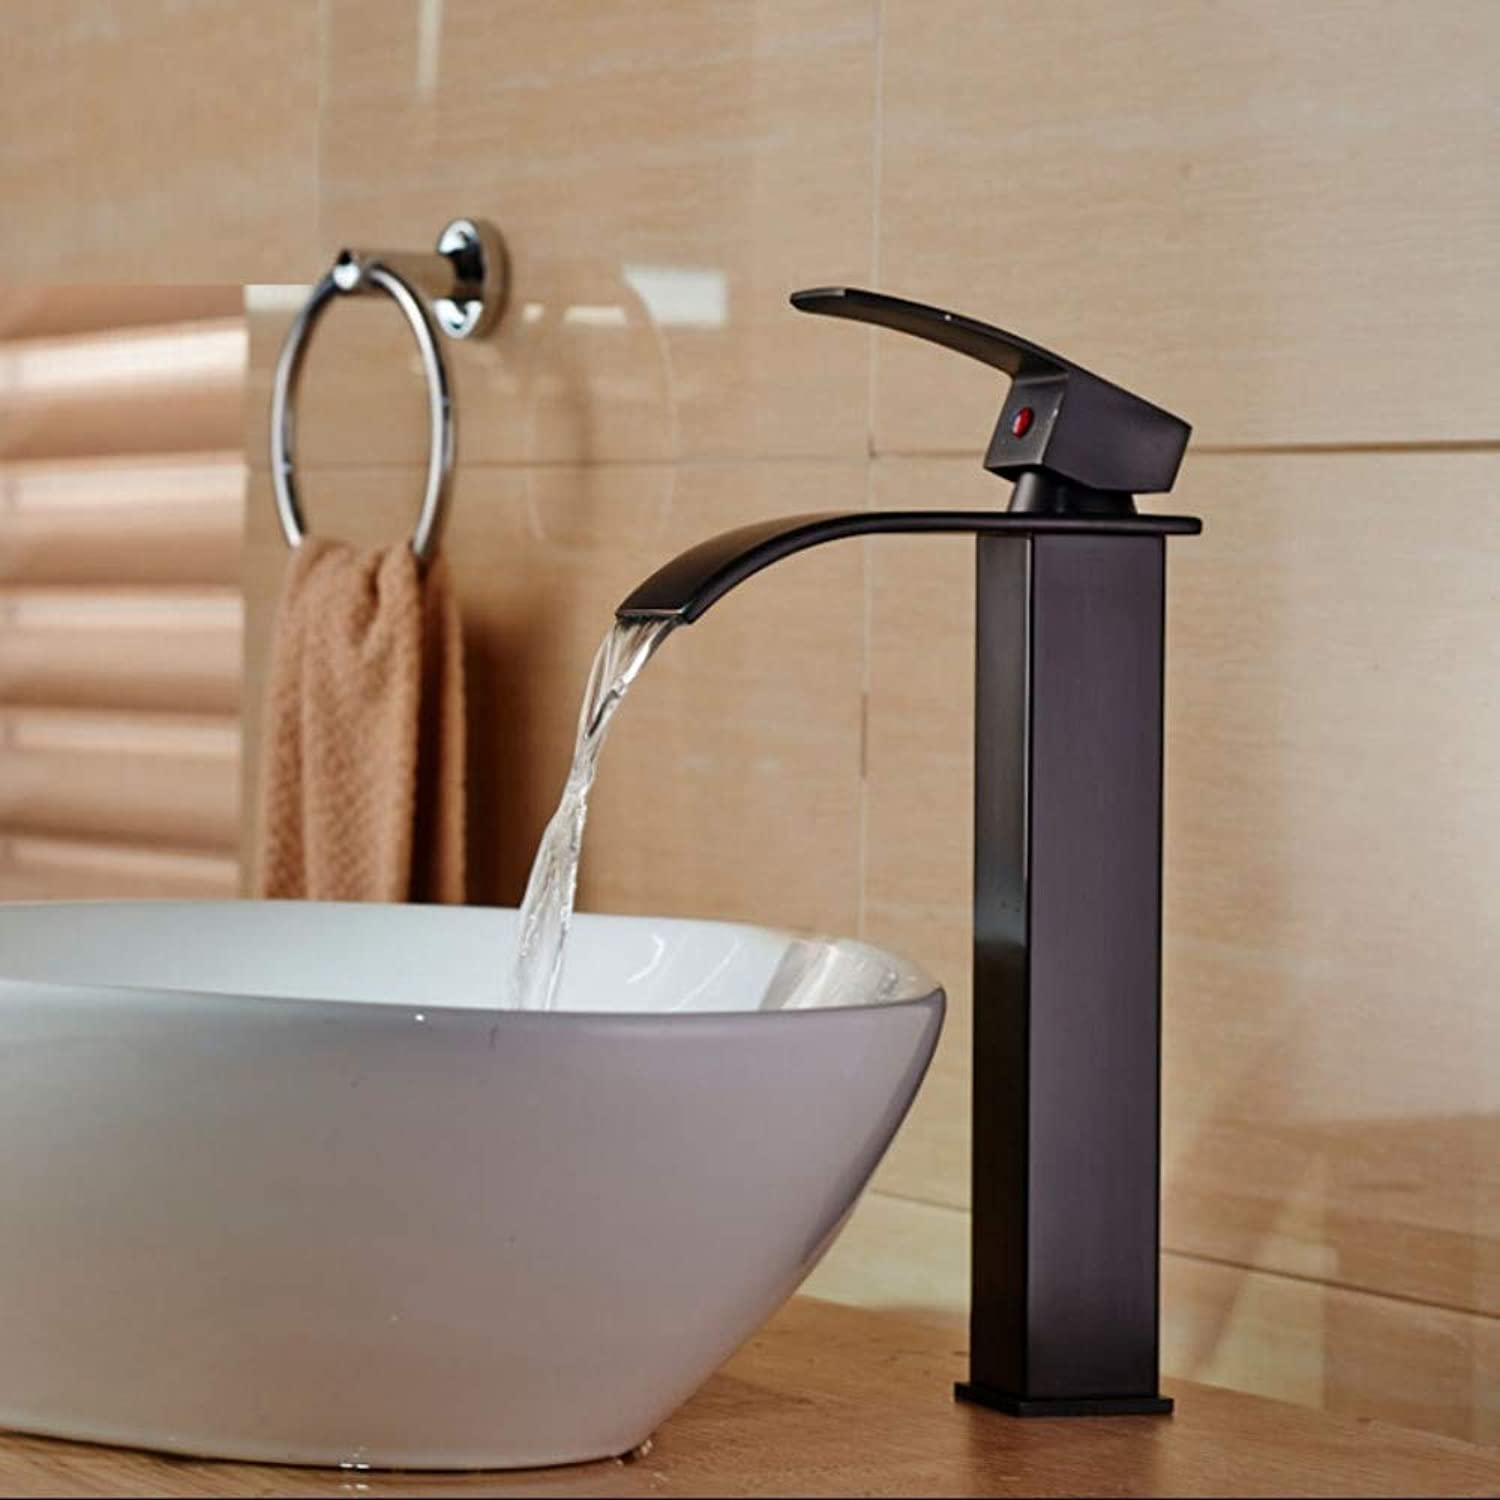 ROKTONG Oil Rubbed Bronze Countertop Waterfall Bathroom Vanity Sink Faucet Deck Mount with Hot Cold Water